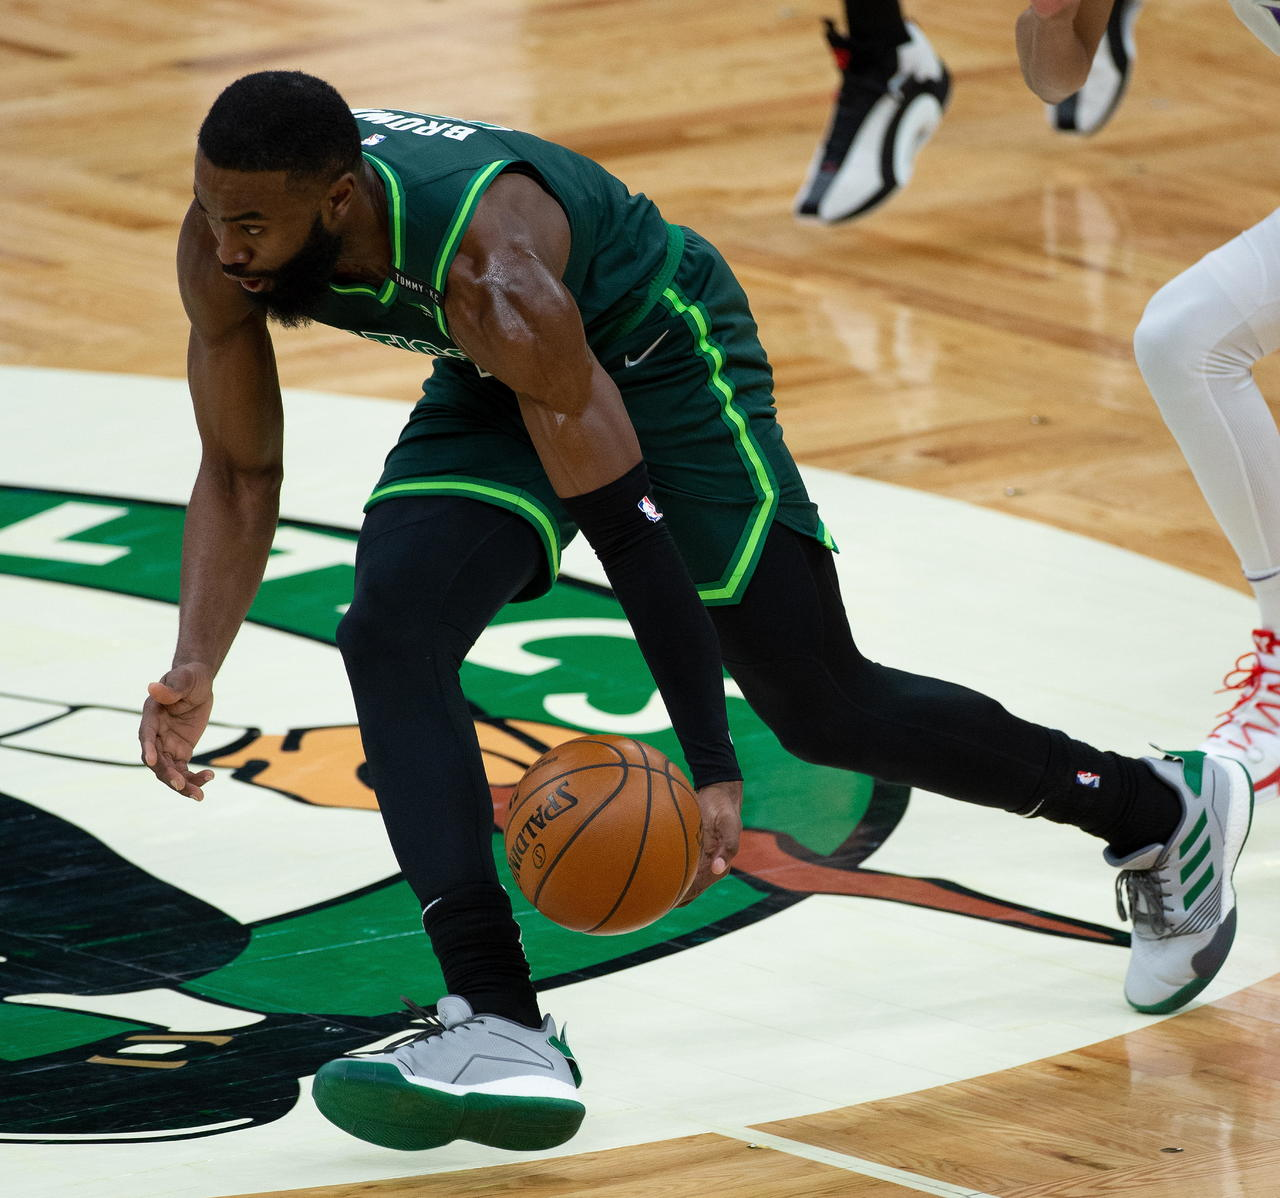 Brown dirige triunfo de Celtics